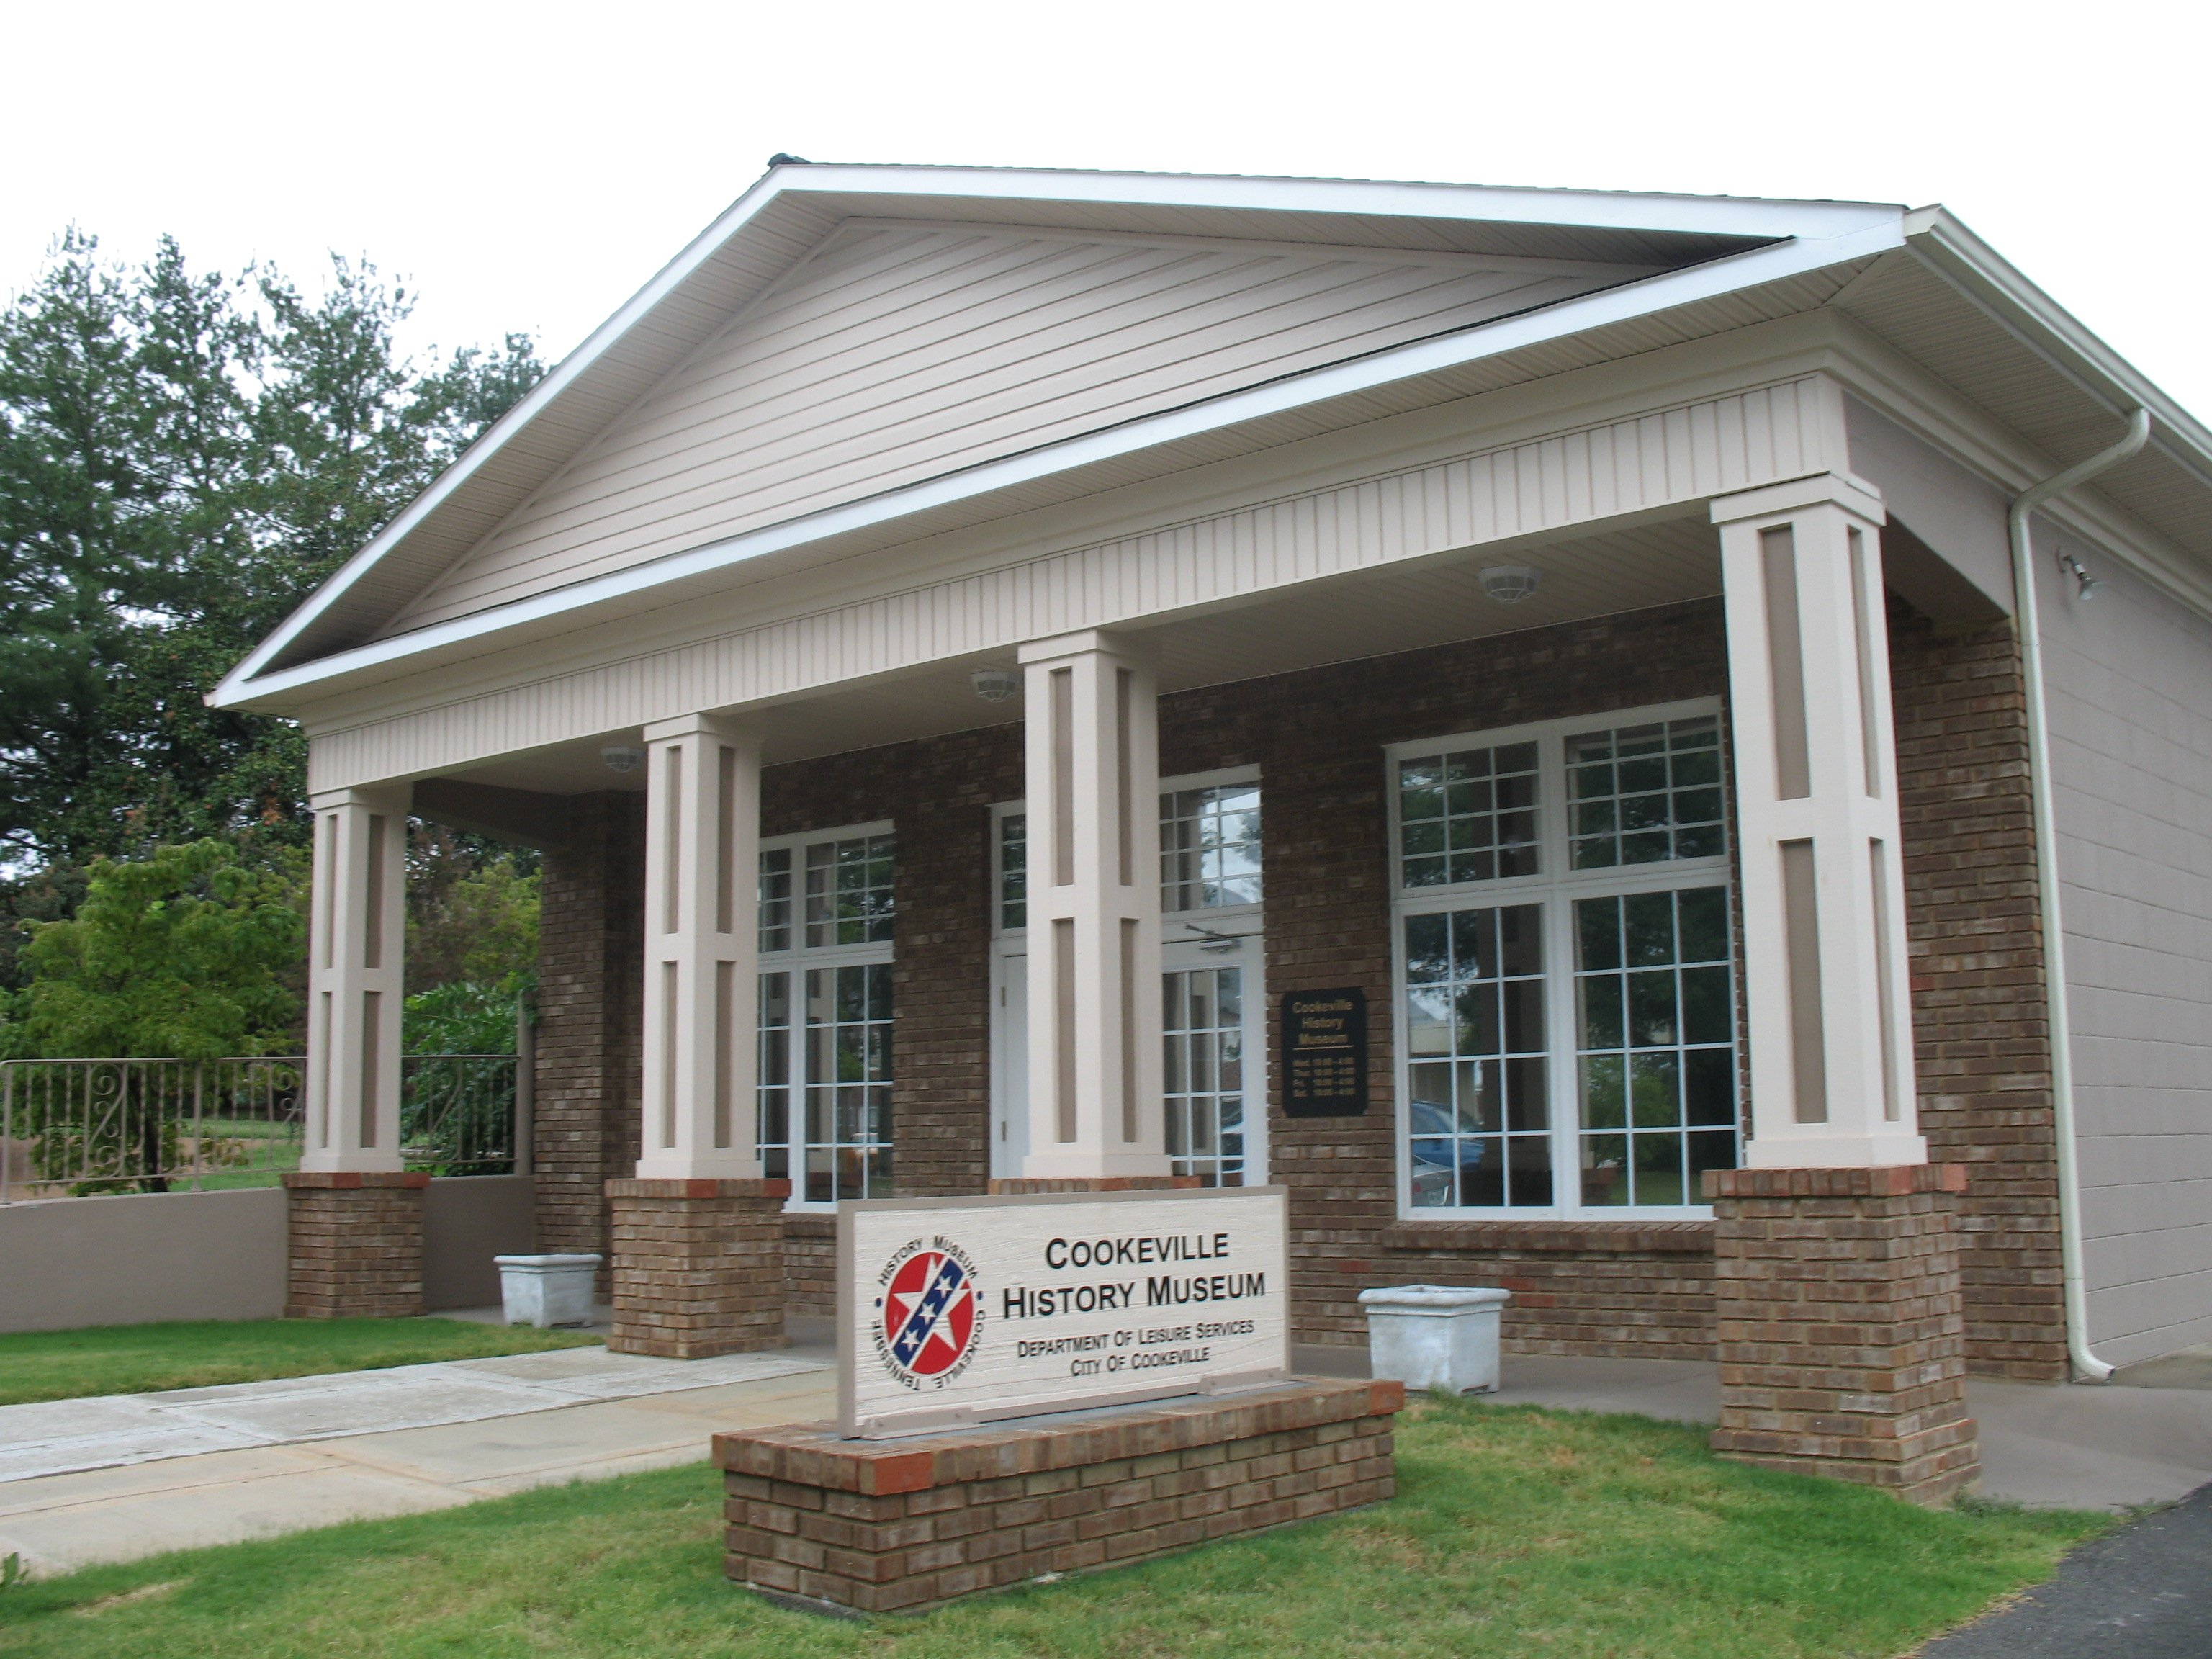 The Cookeville History Museum